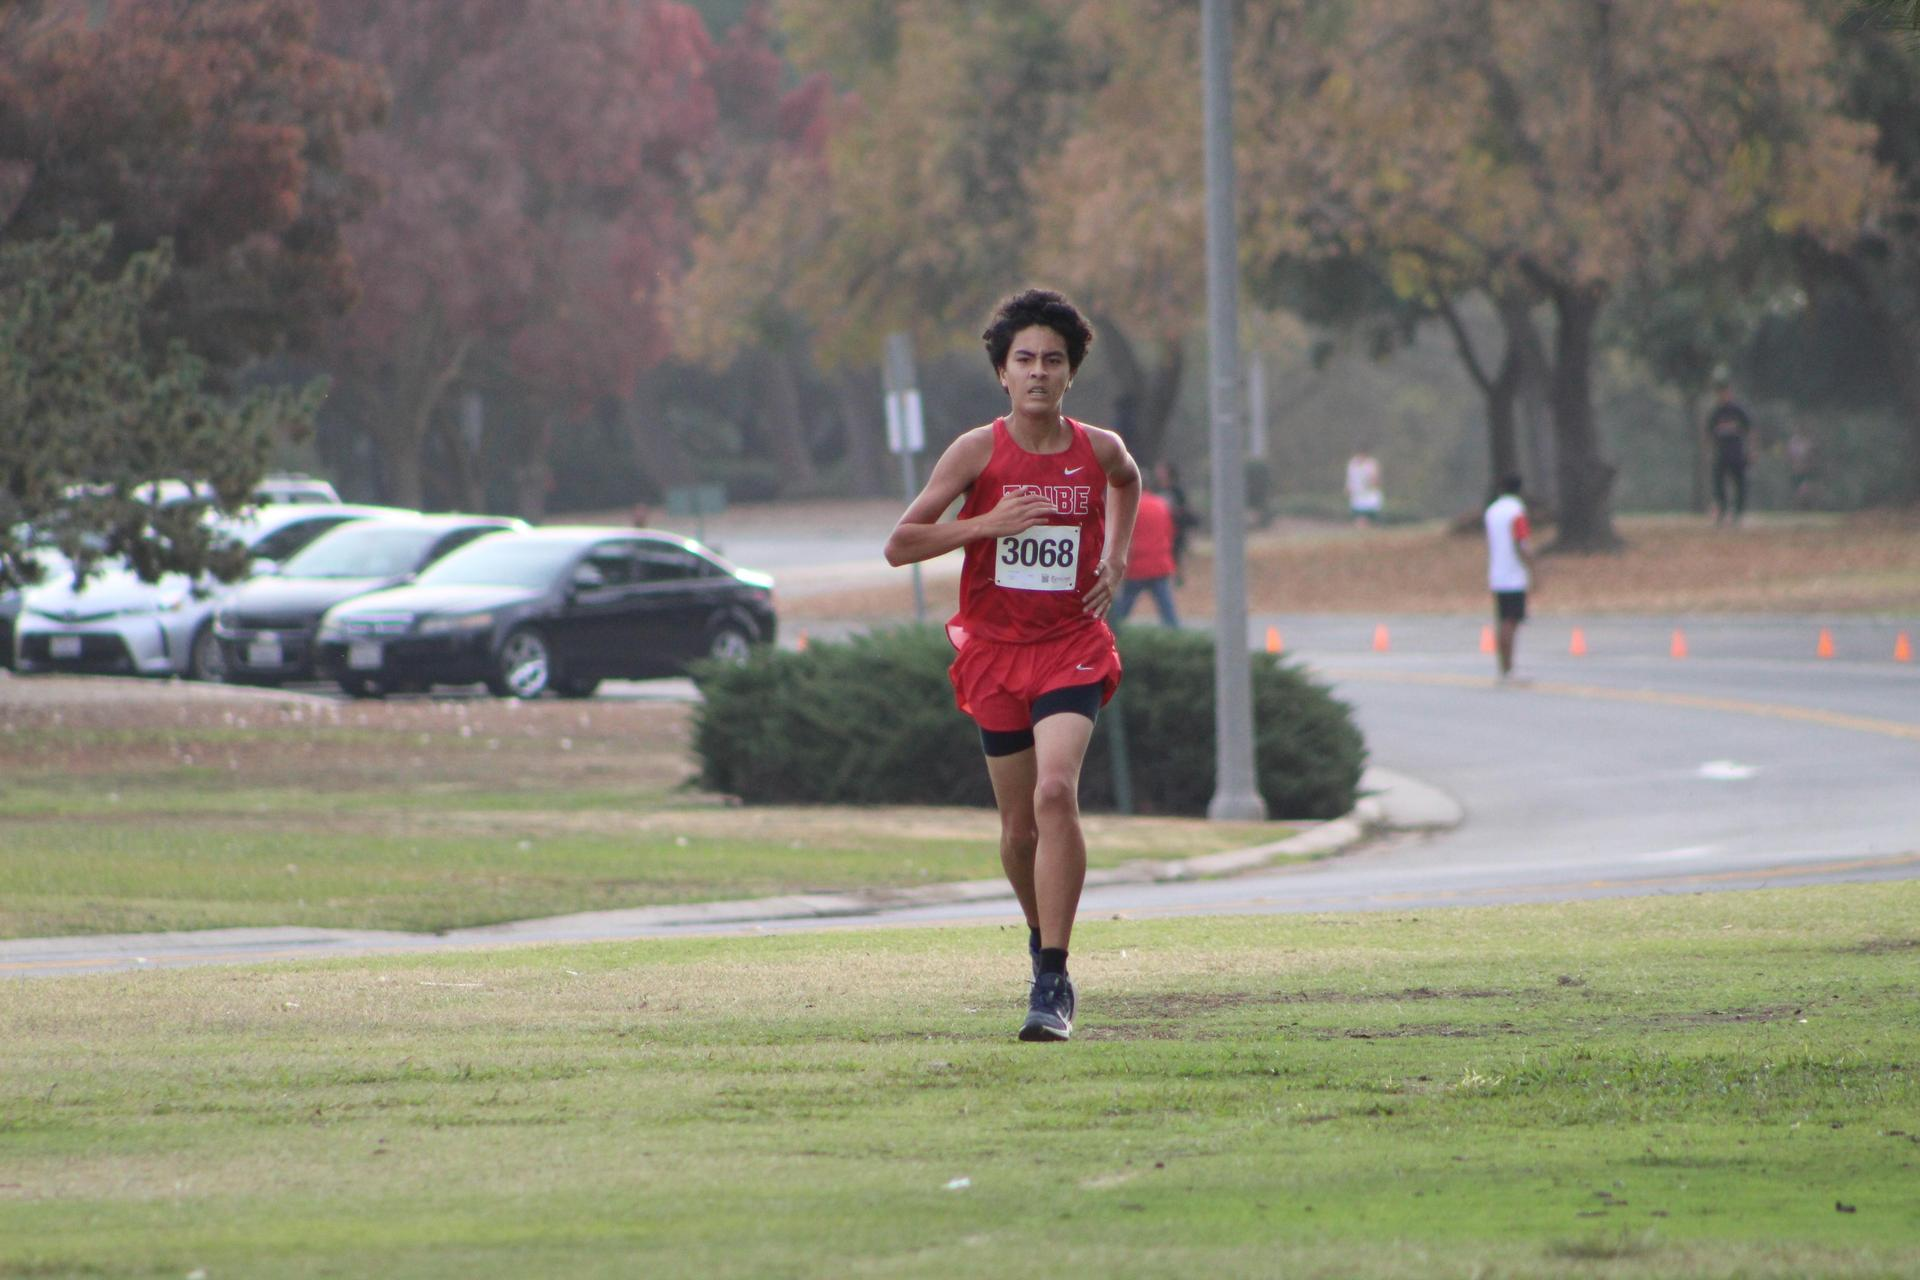 Nicholas Lopez finishing